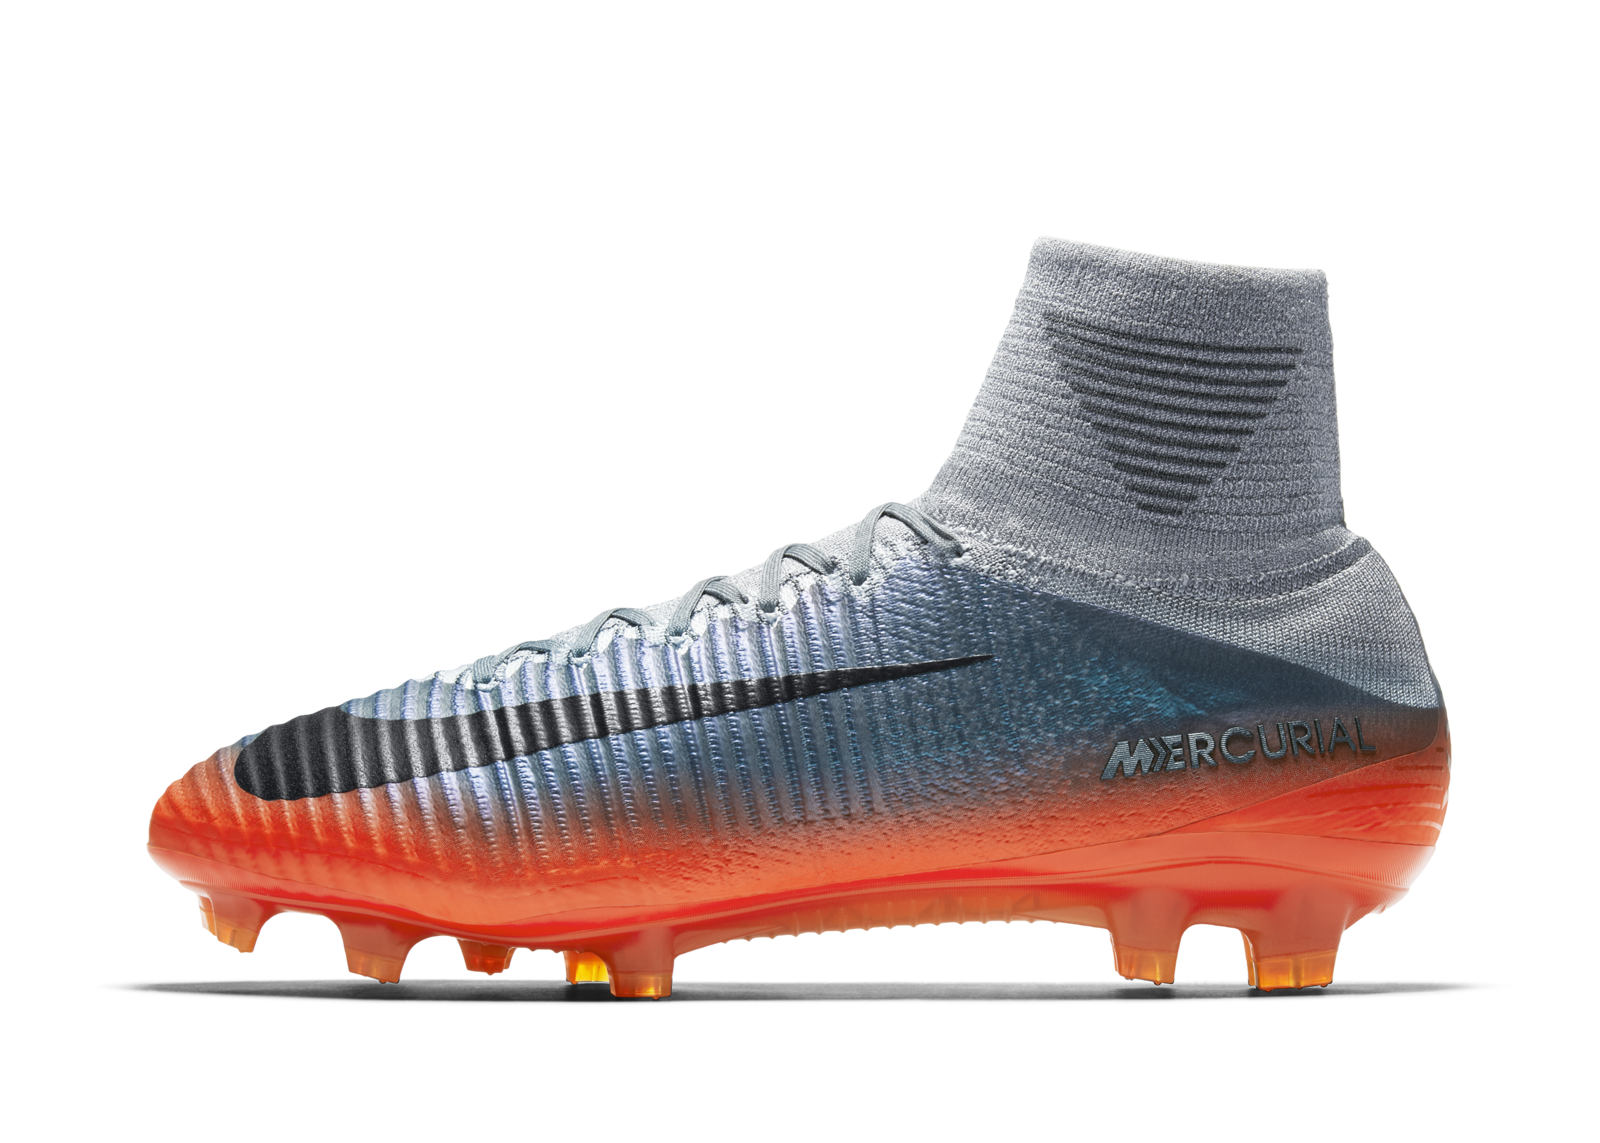 f2ca1c18549 Nike News - Cristiano Ronaldo s New Boots Recall His Shift to Number 7